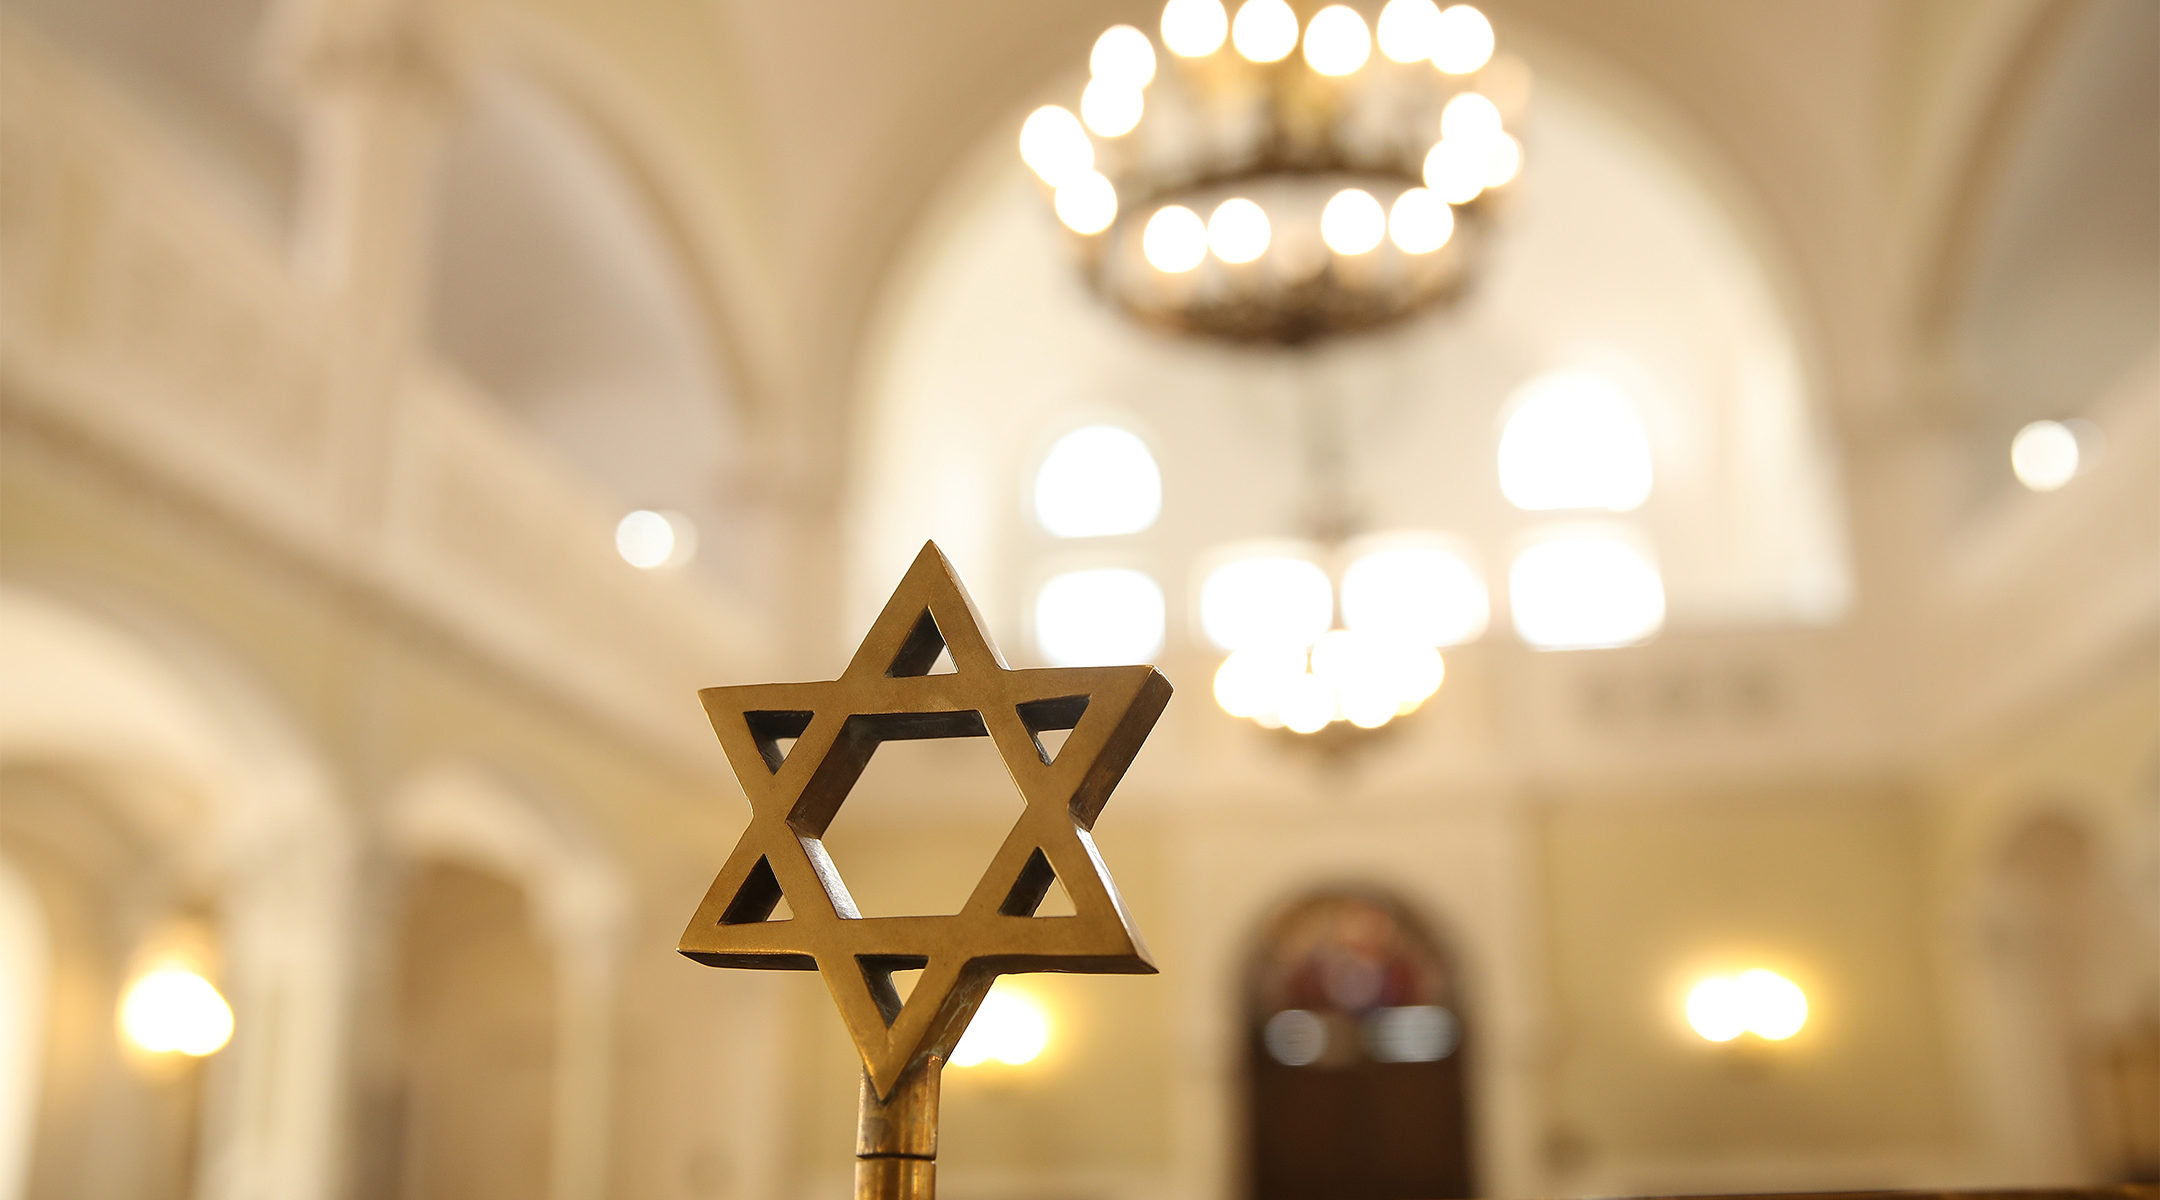 A Star of David stands in the Nozyk Synagogue, Warsaw's only surviving synagogue from before World War II and located in the city's former ghetto, April 12, 2018 (Sean Gallup/Getty Images)